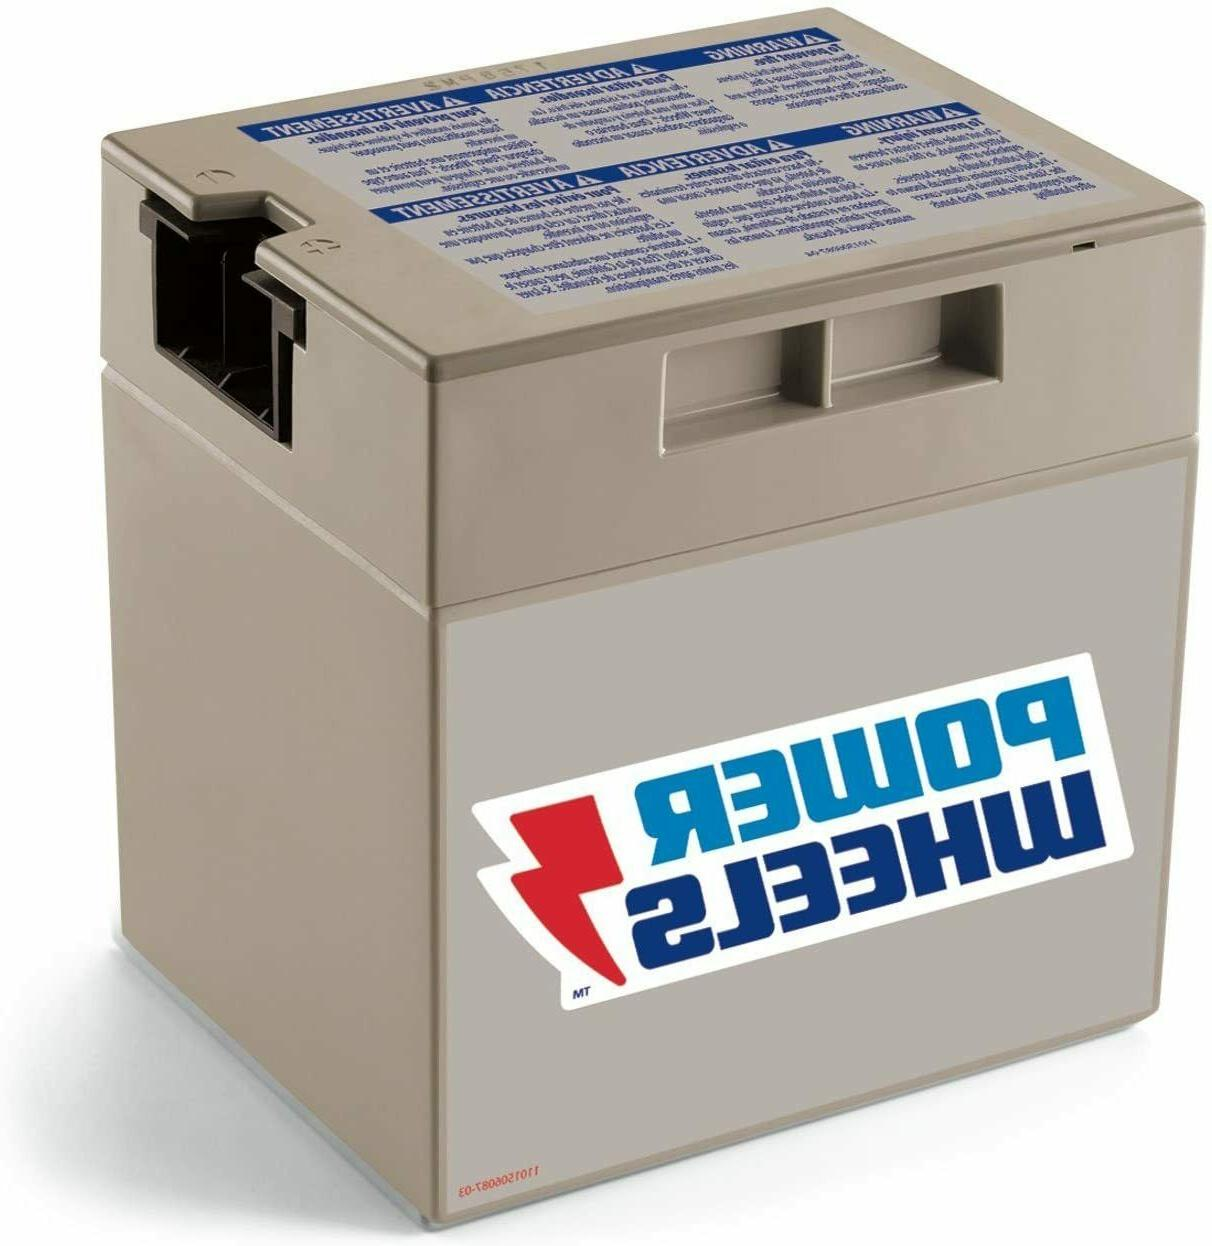 12 volt rechargeable replacement battery free shipping